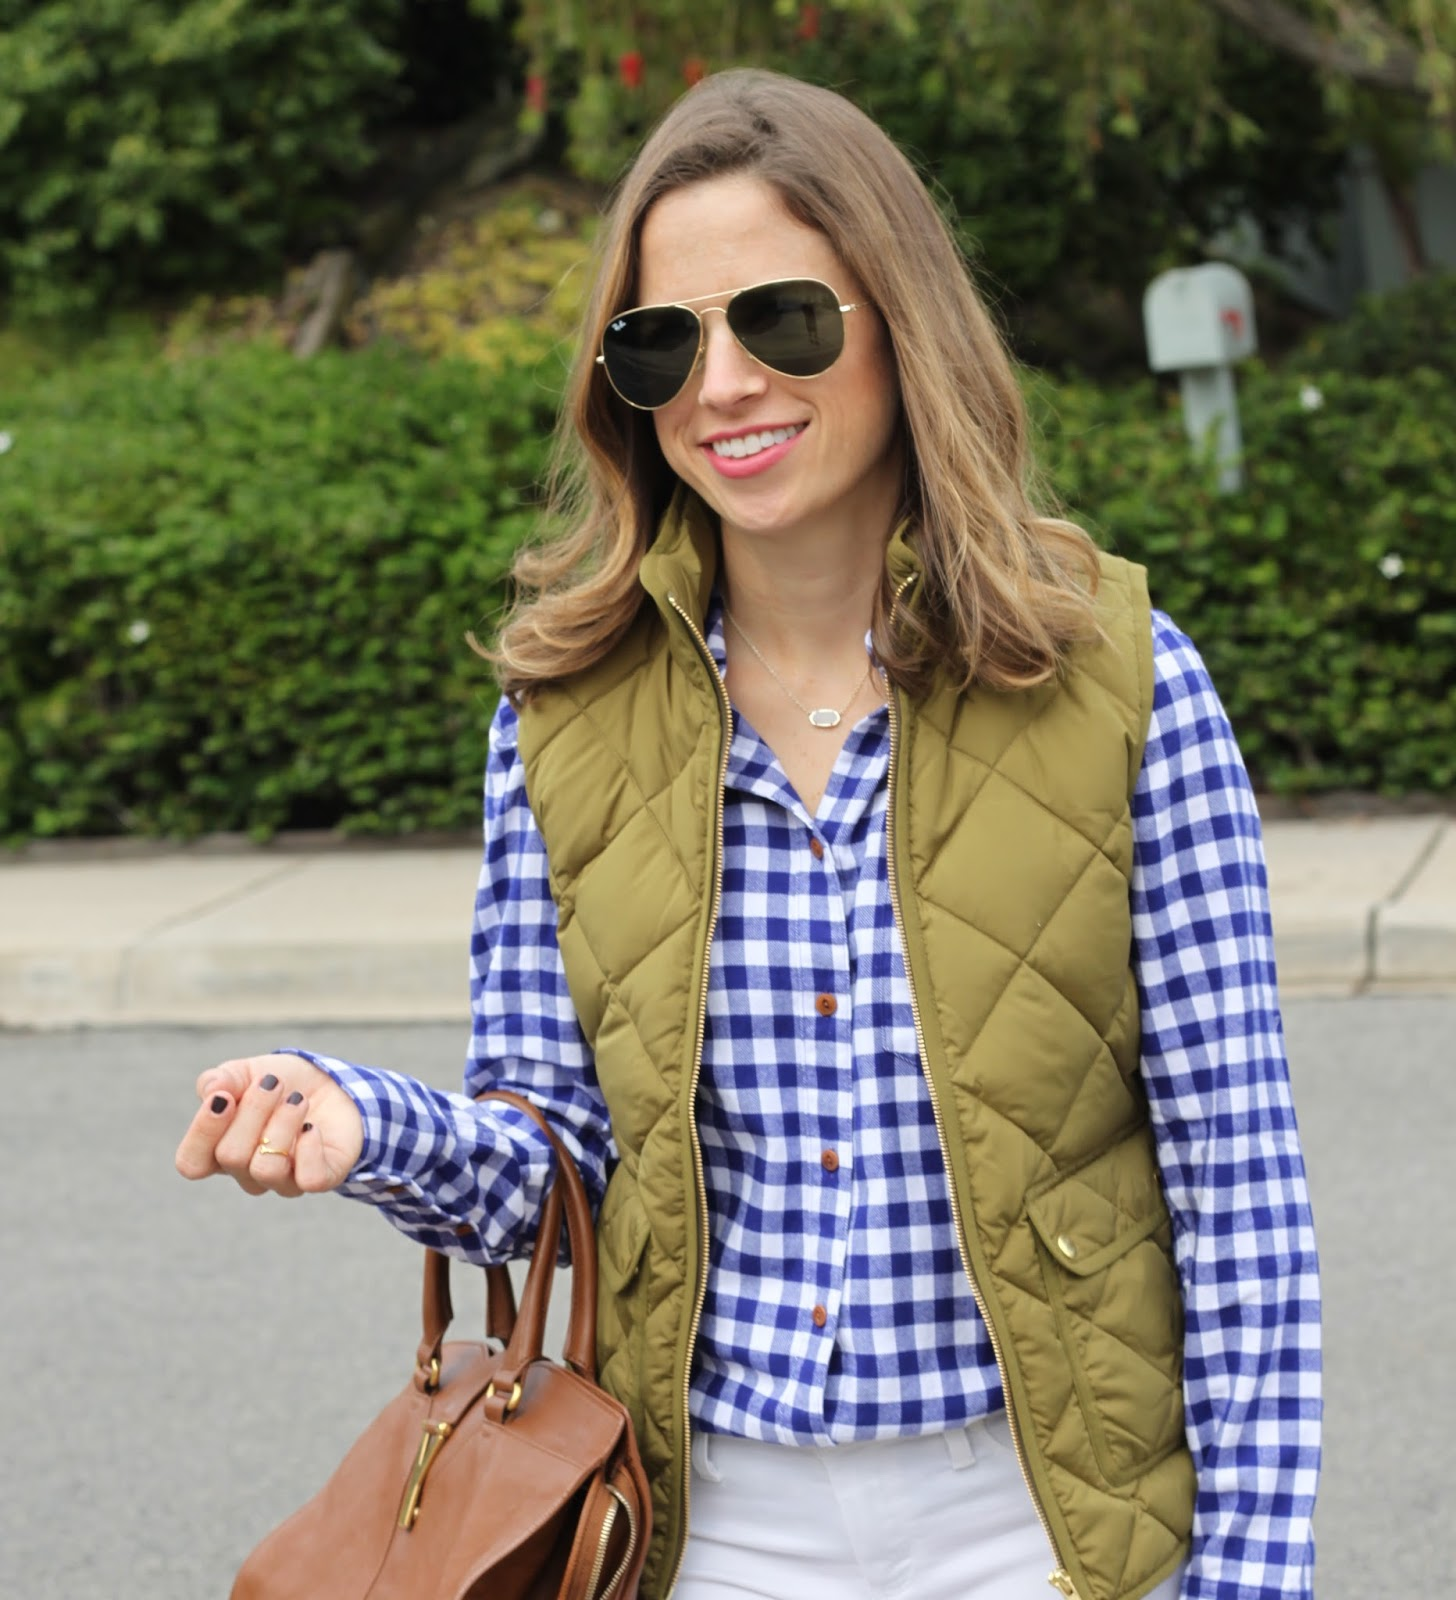 gingham shirt and excursion vest